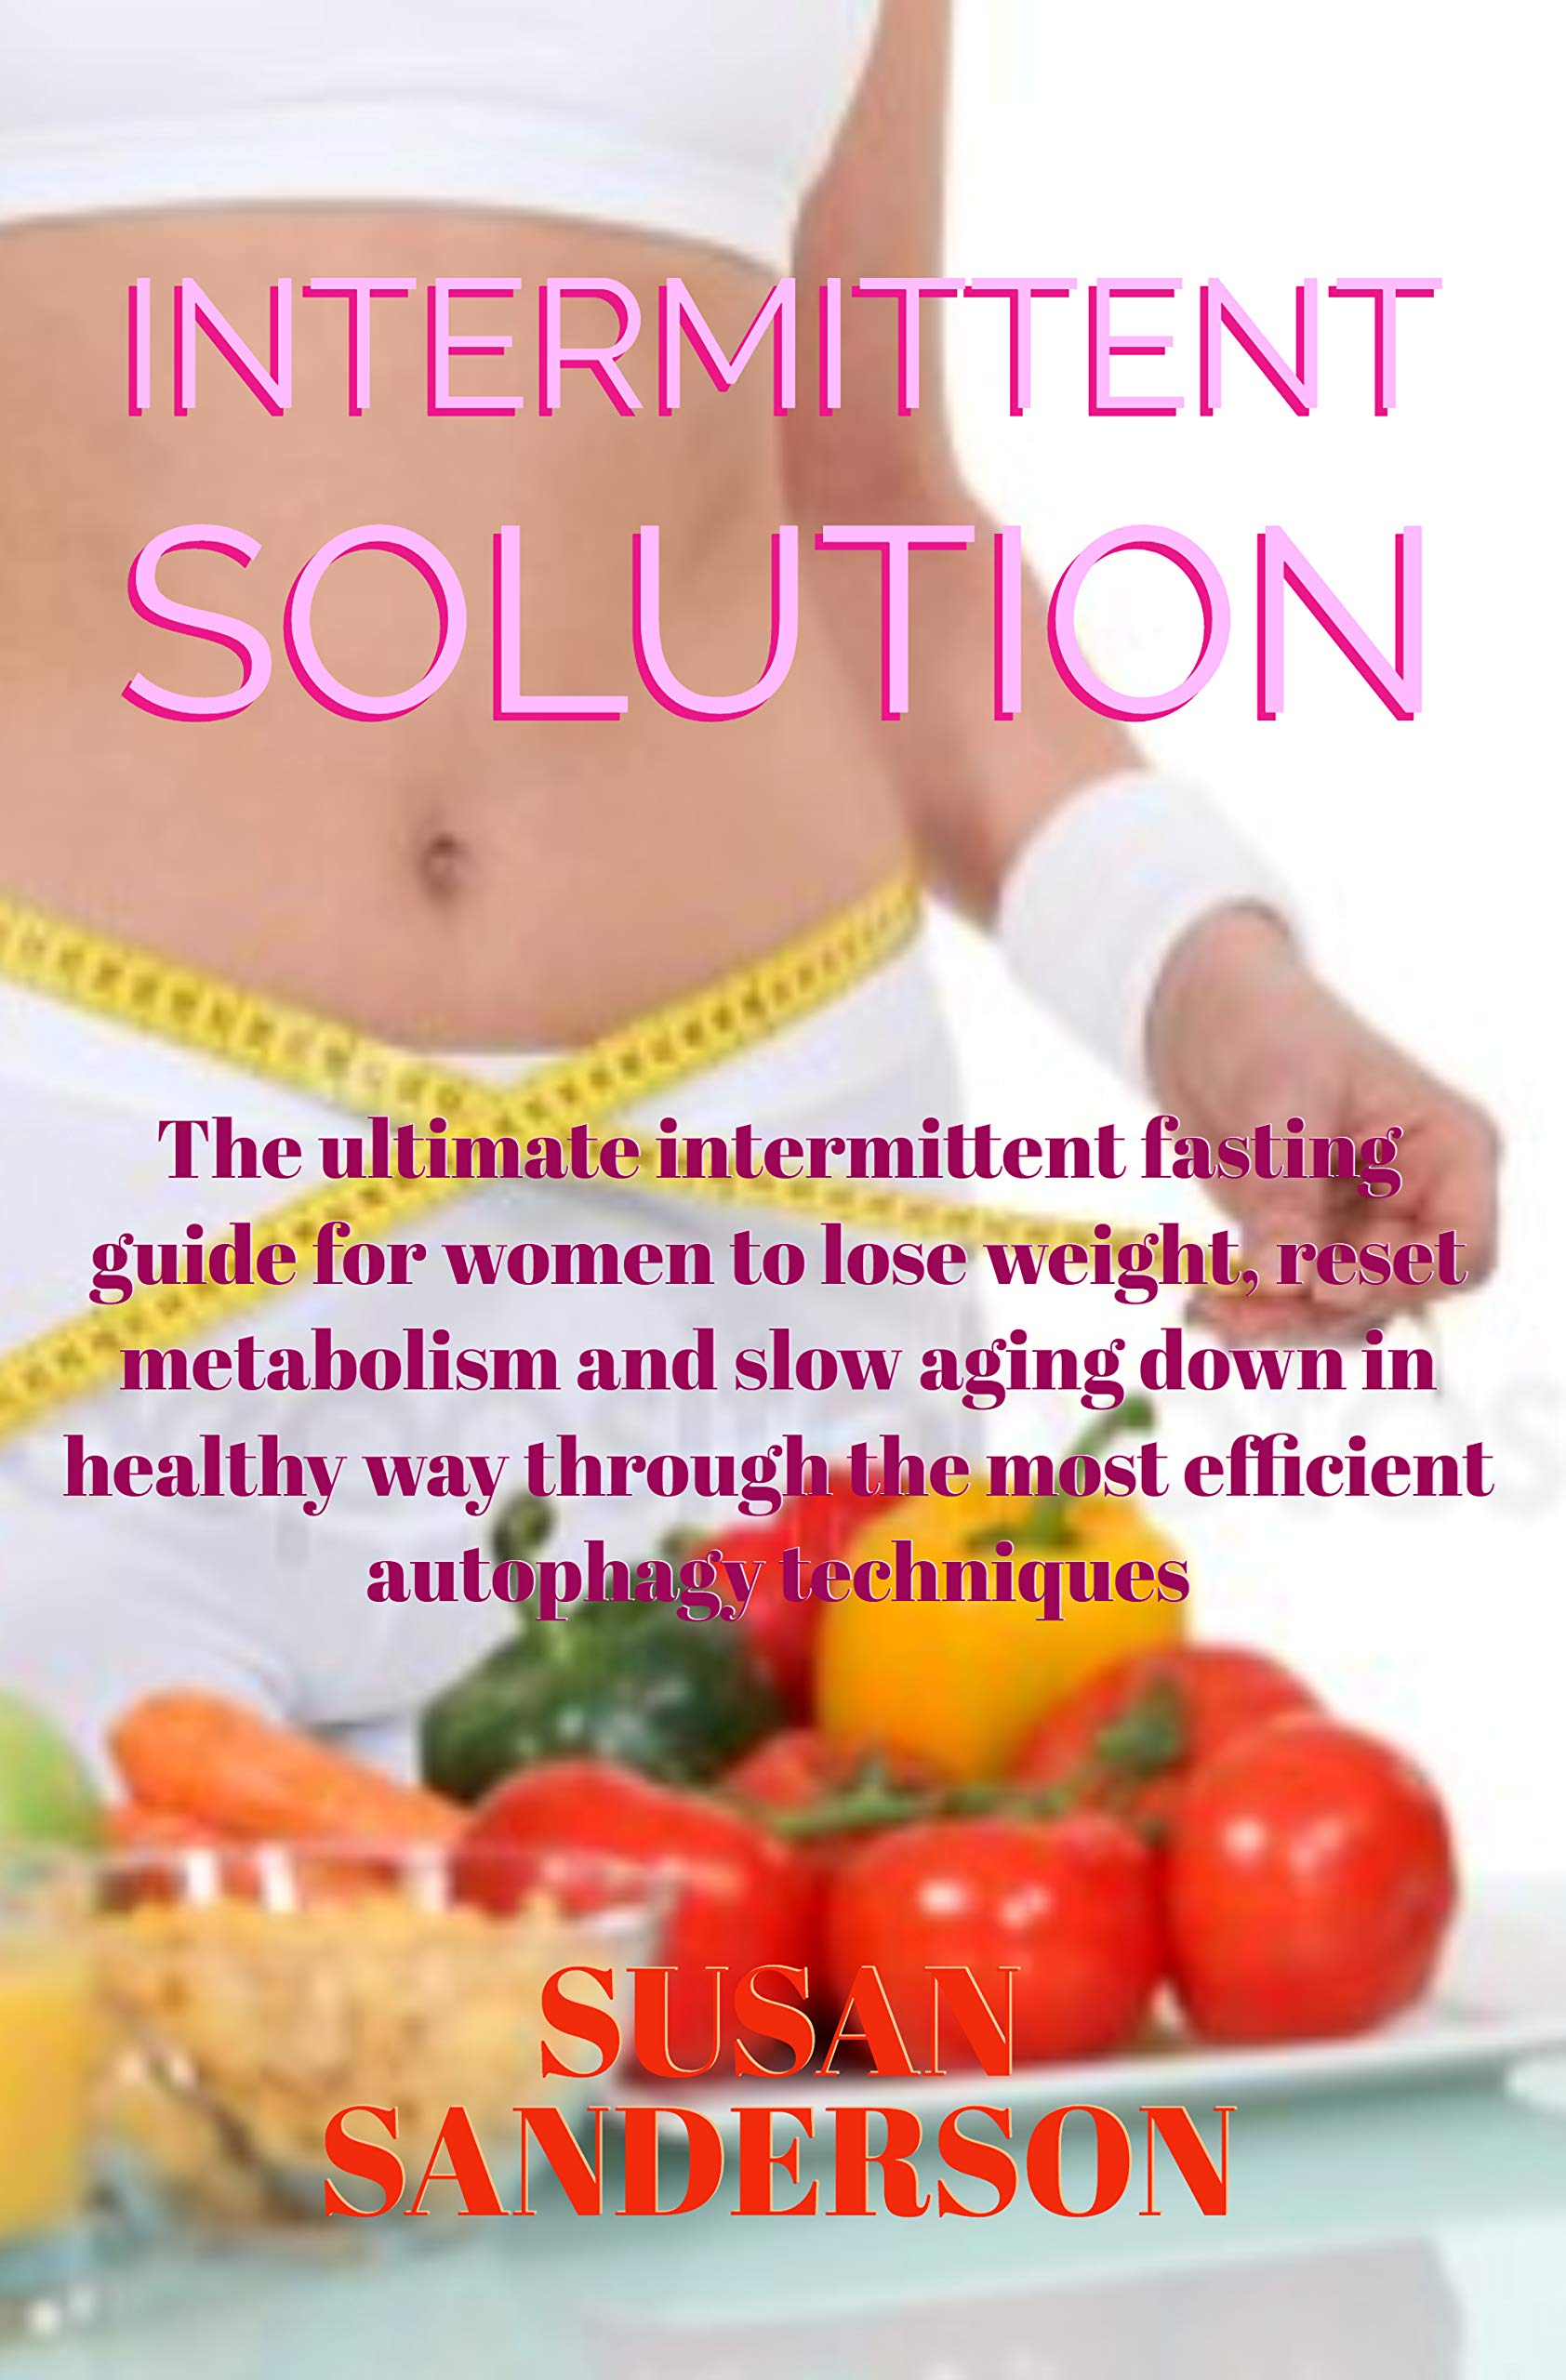 Image OfIntermittent Solution: The Ultimate Intermittent Fasting Guide For Women To Lose Weight, Reset Metabolism And Slow Aging D...